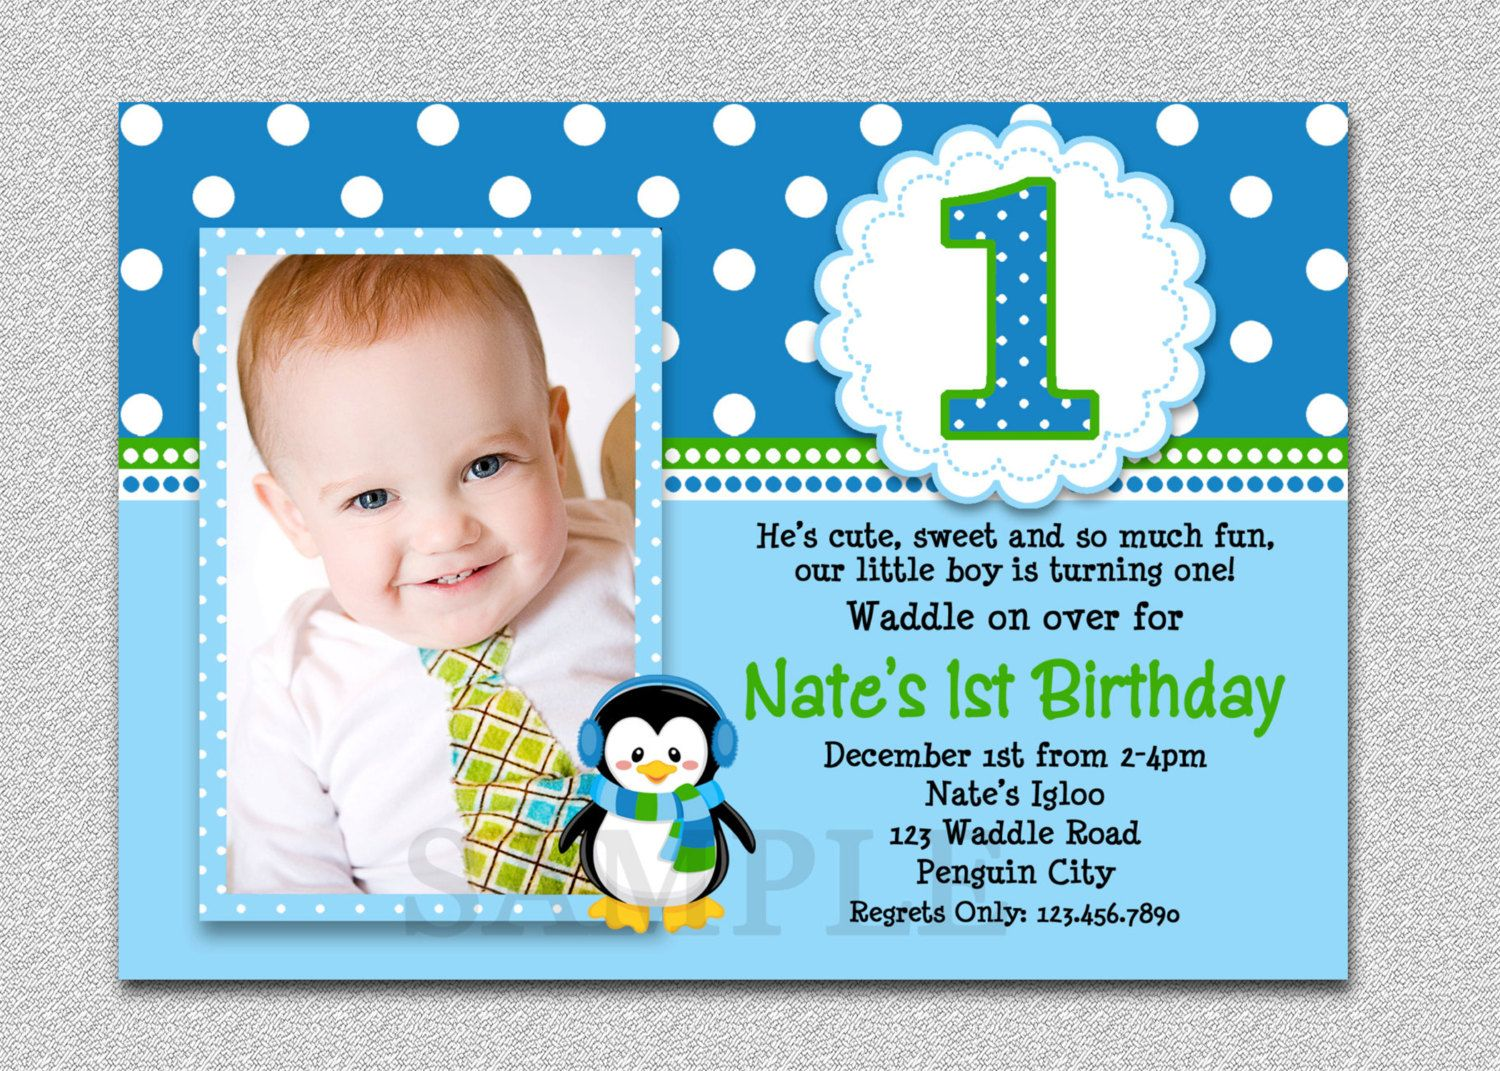 1st birthday invitations 21st bridal world wedding ideas and 1st birthday invitations 21st bridal world wedding ideas and trends stopboris